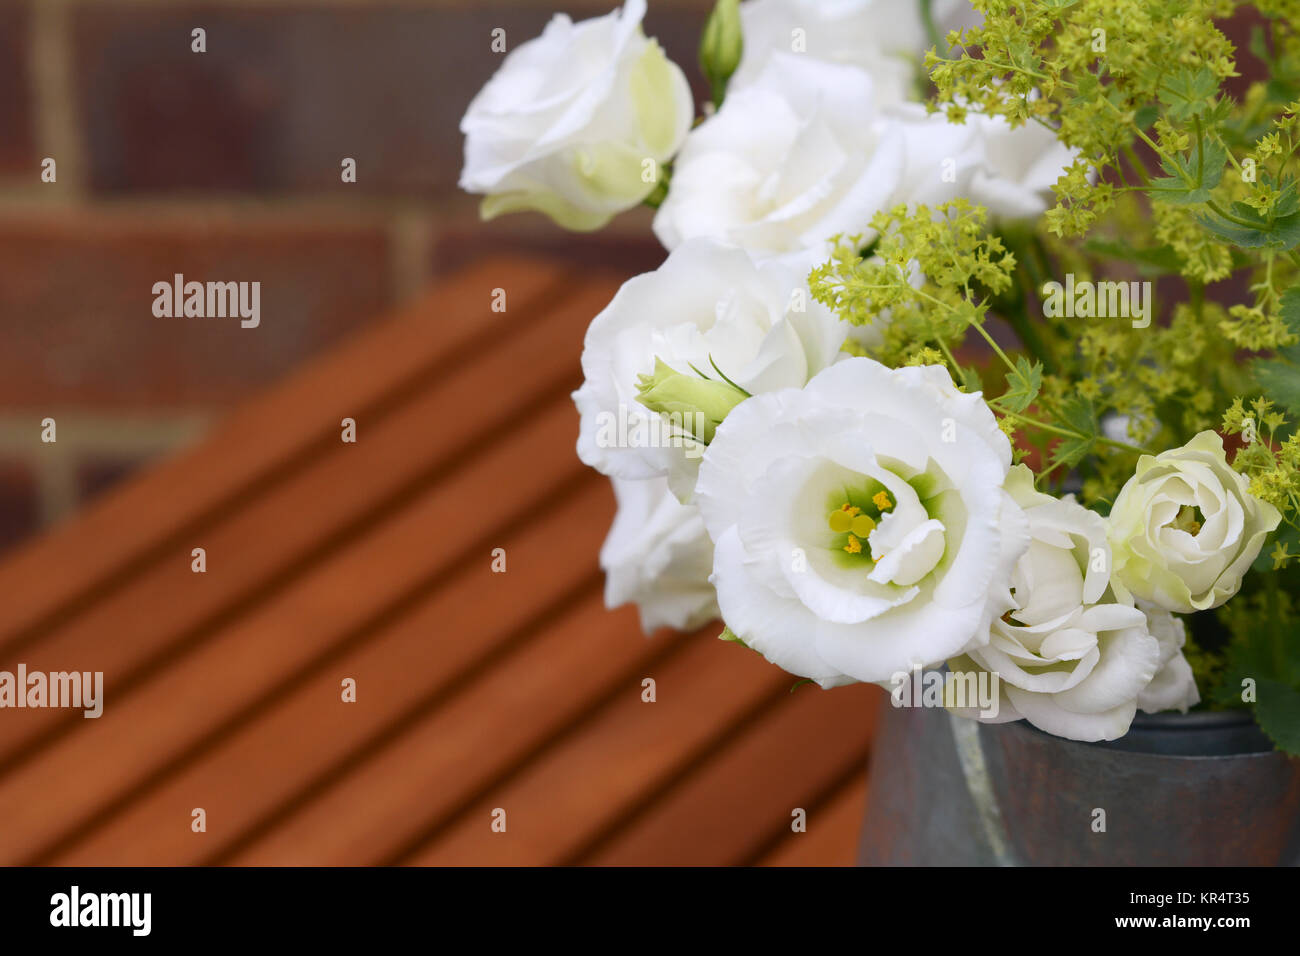 White tulip gentians with ladys mantle on a wooden table - Stock Image